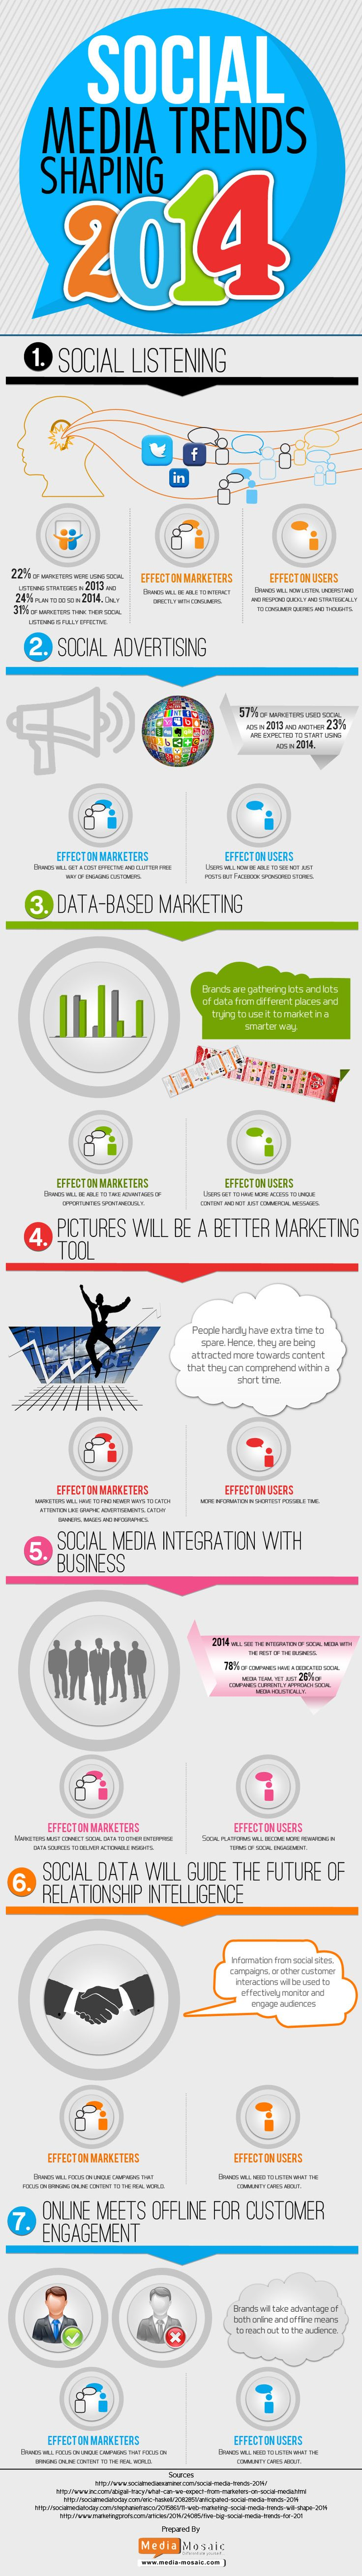 4 Social Media trends already shaping 2014 [Infographic]